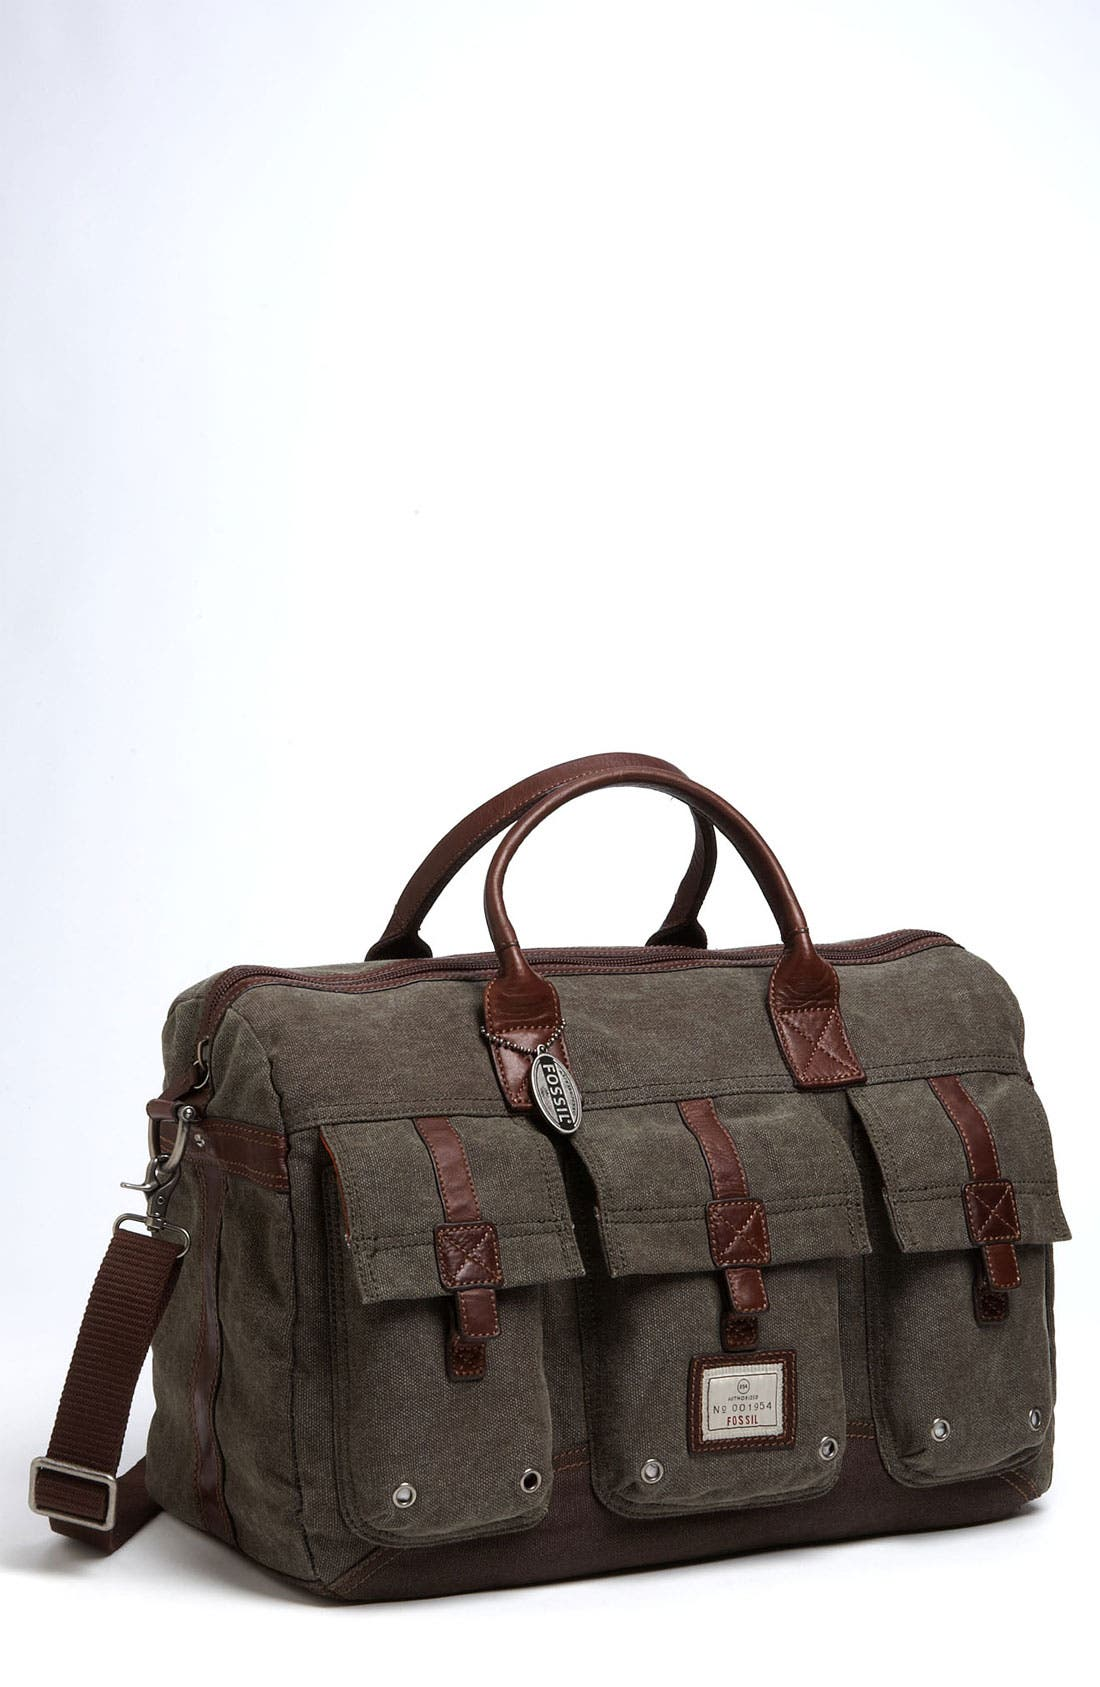 Alternate Image 1 Selected - Fossil 'Trail' Duffel Bag